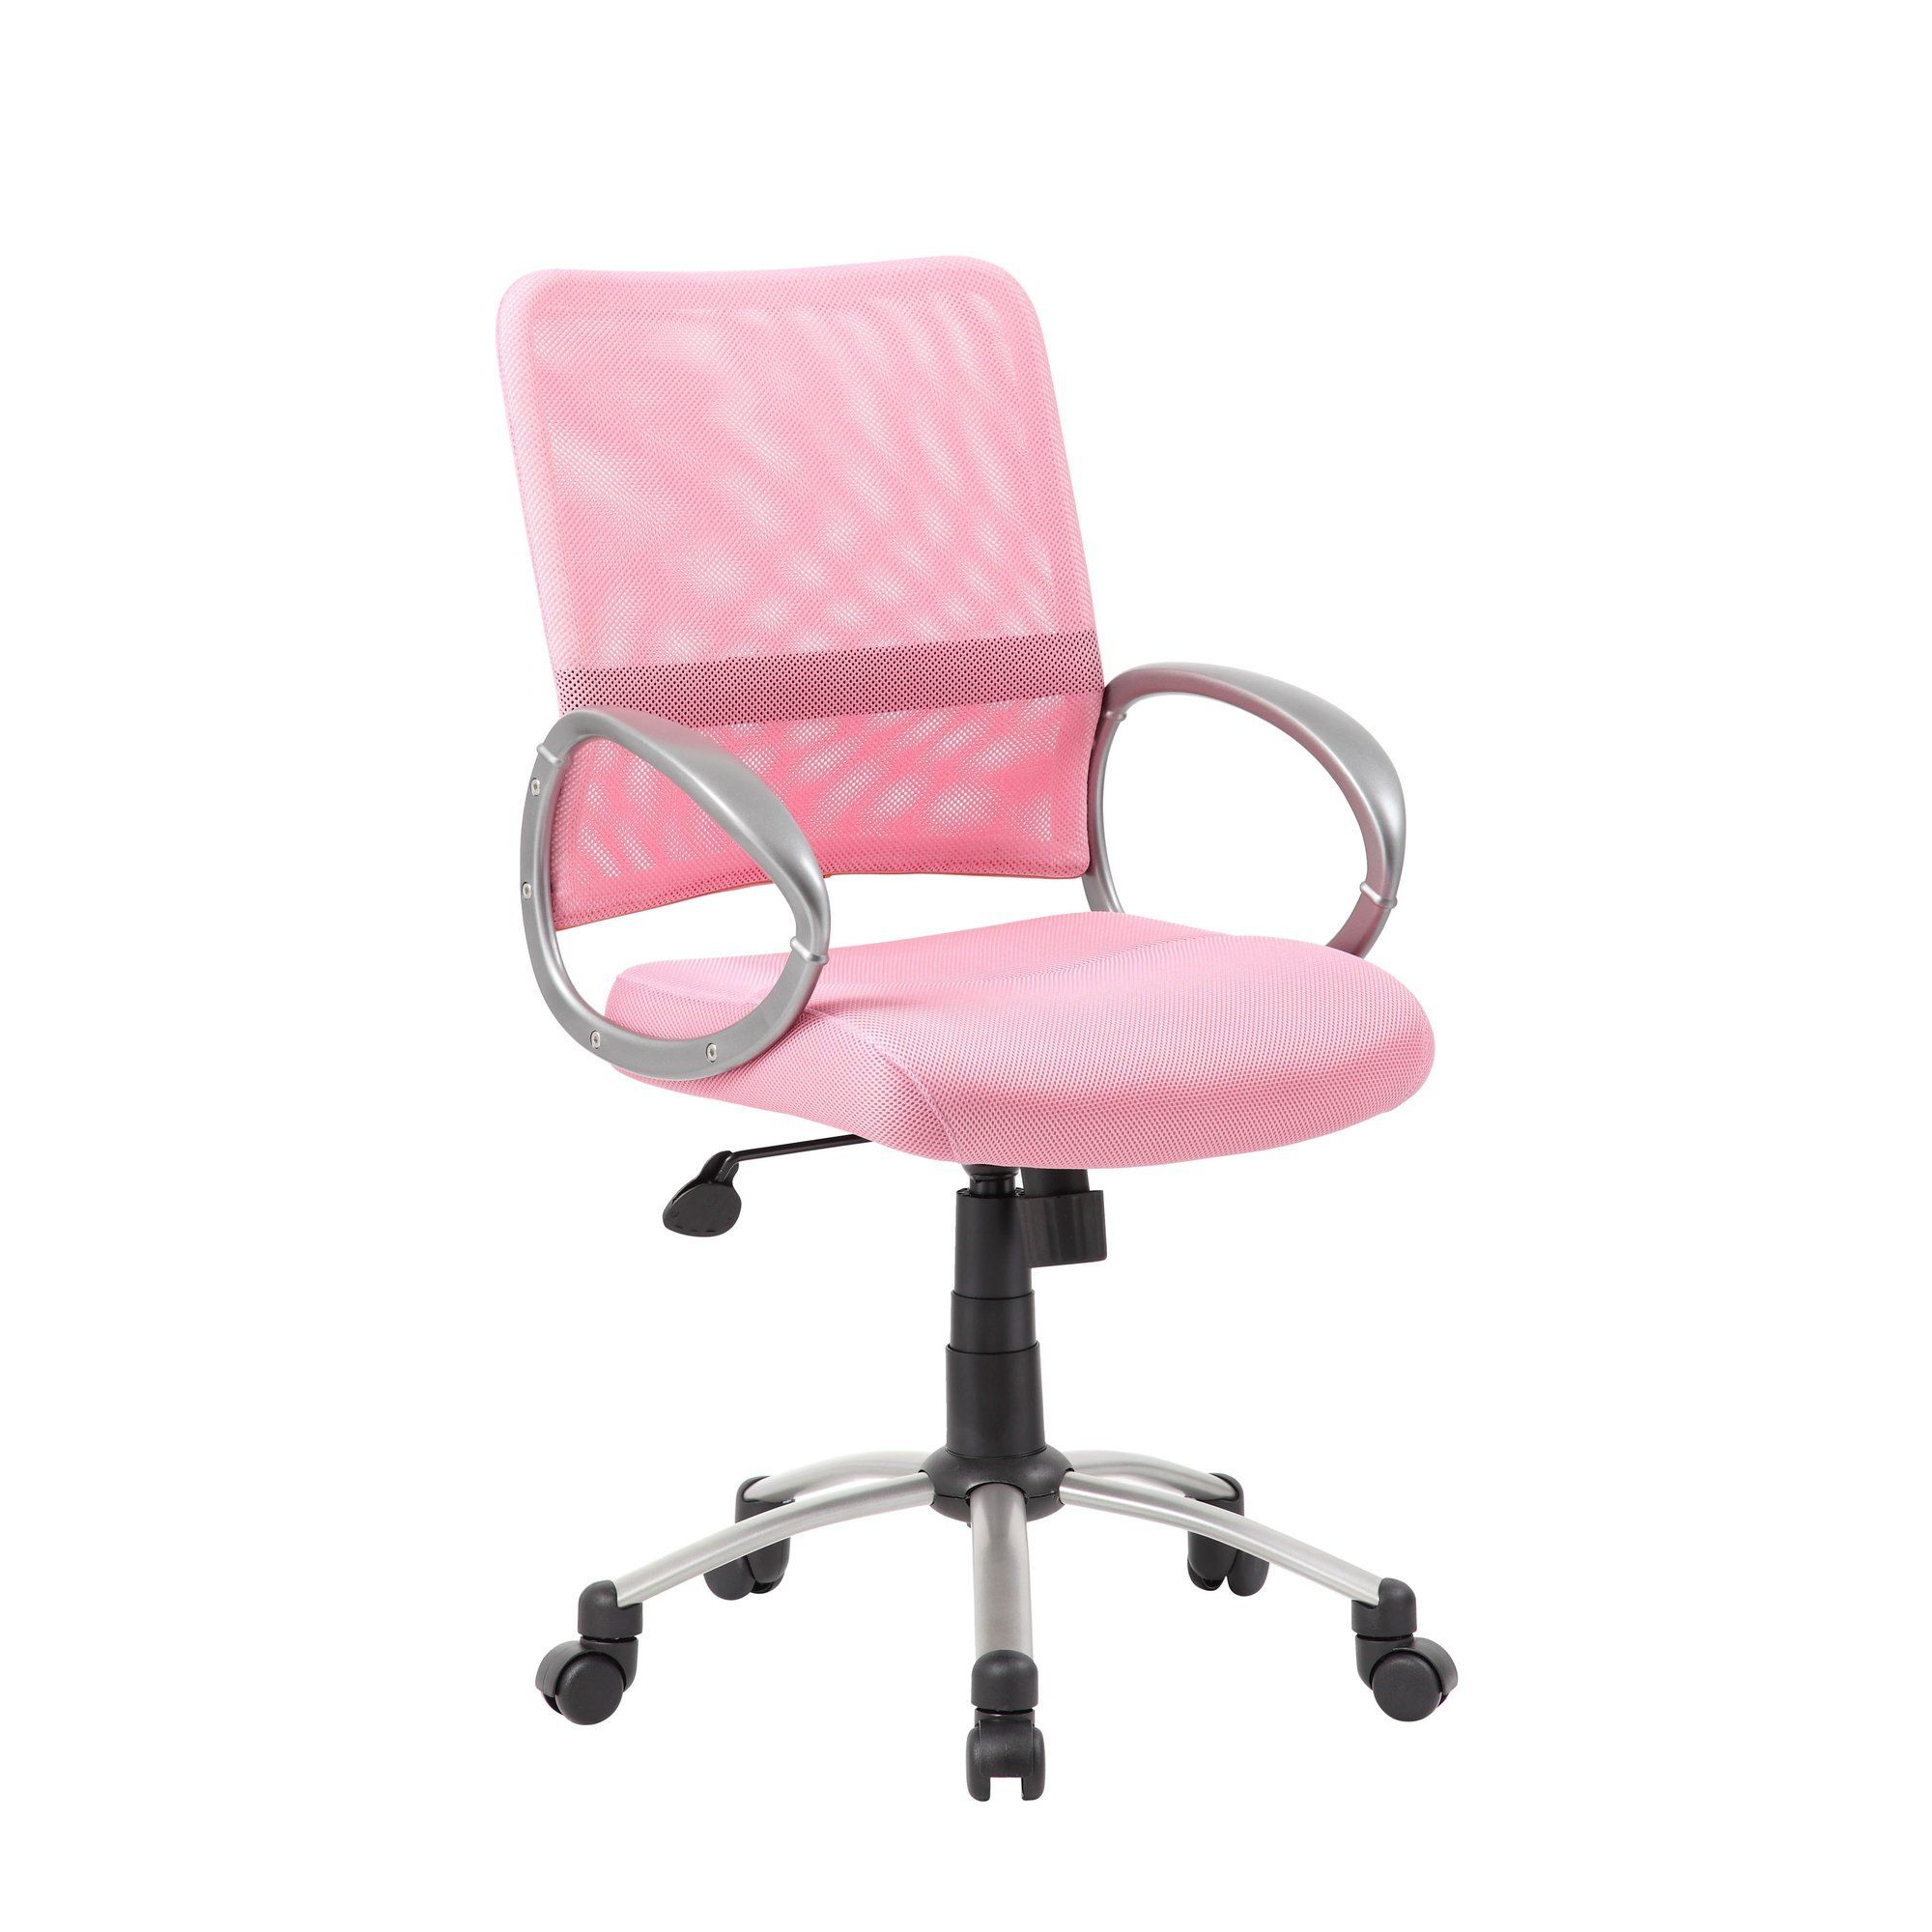 hd white throughout buy arms chairs adorable modern desk with back computer and cushion chair drafting interesting stool pink office high without stools furniture comfortable